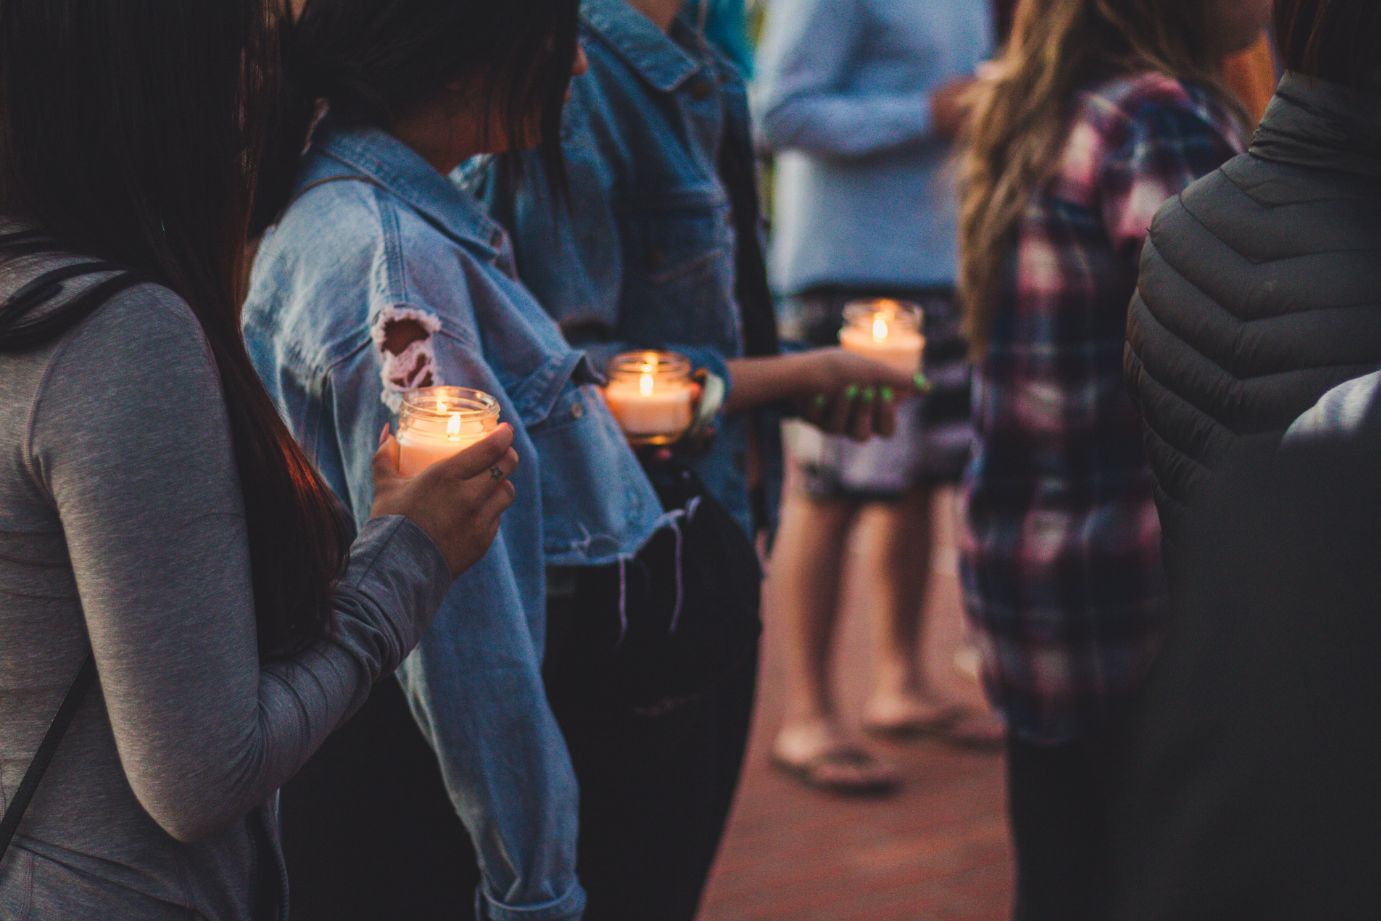 Venturans hold candles to mourn the loss of those murdered at the Borderline Bar & Grill in Thousand Oaks, Ca. Credit: Stefan Fahr / The Foothill Dragon Press